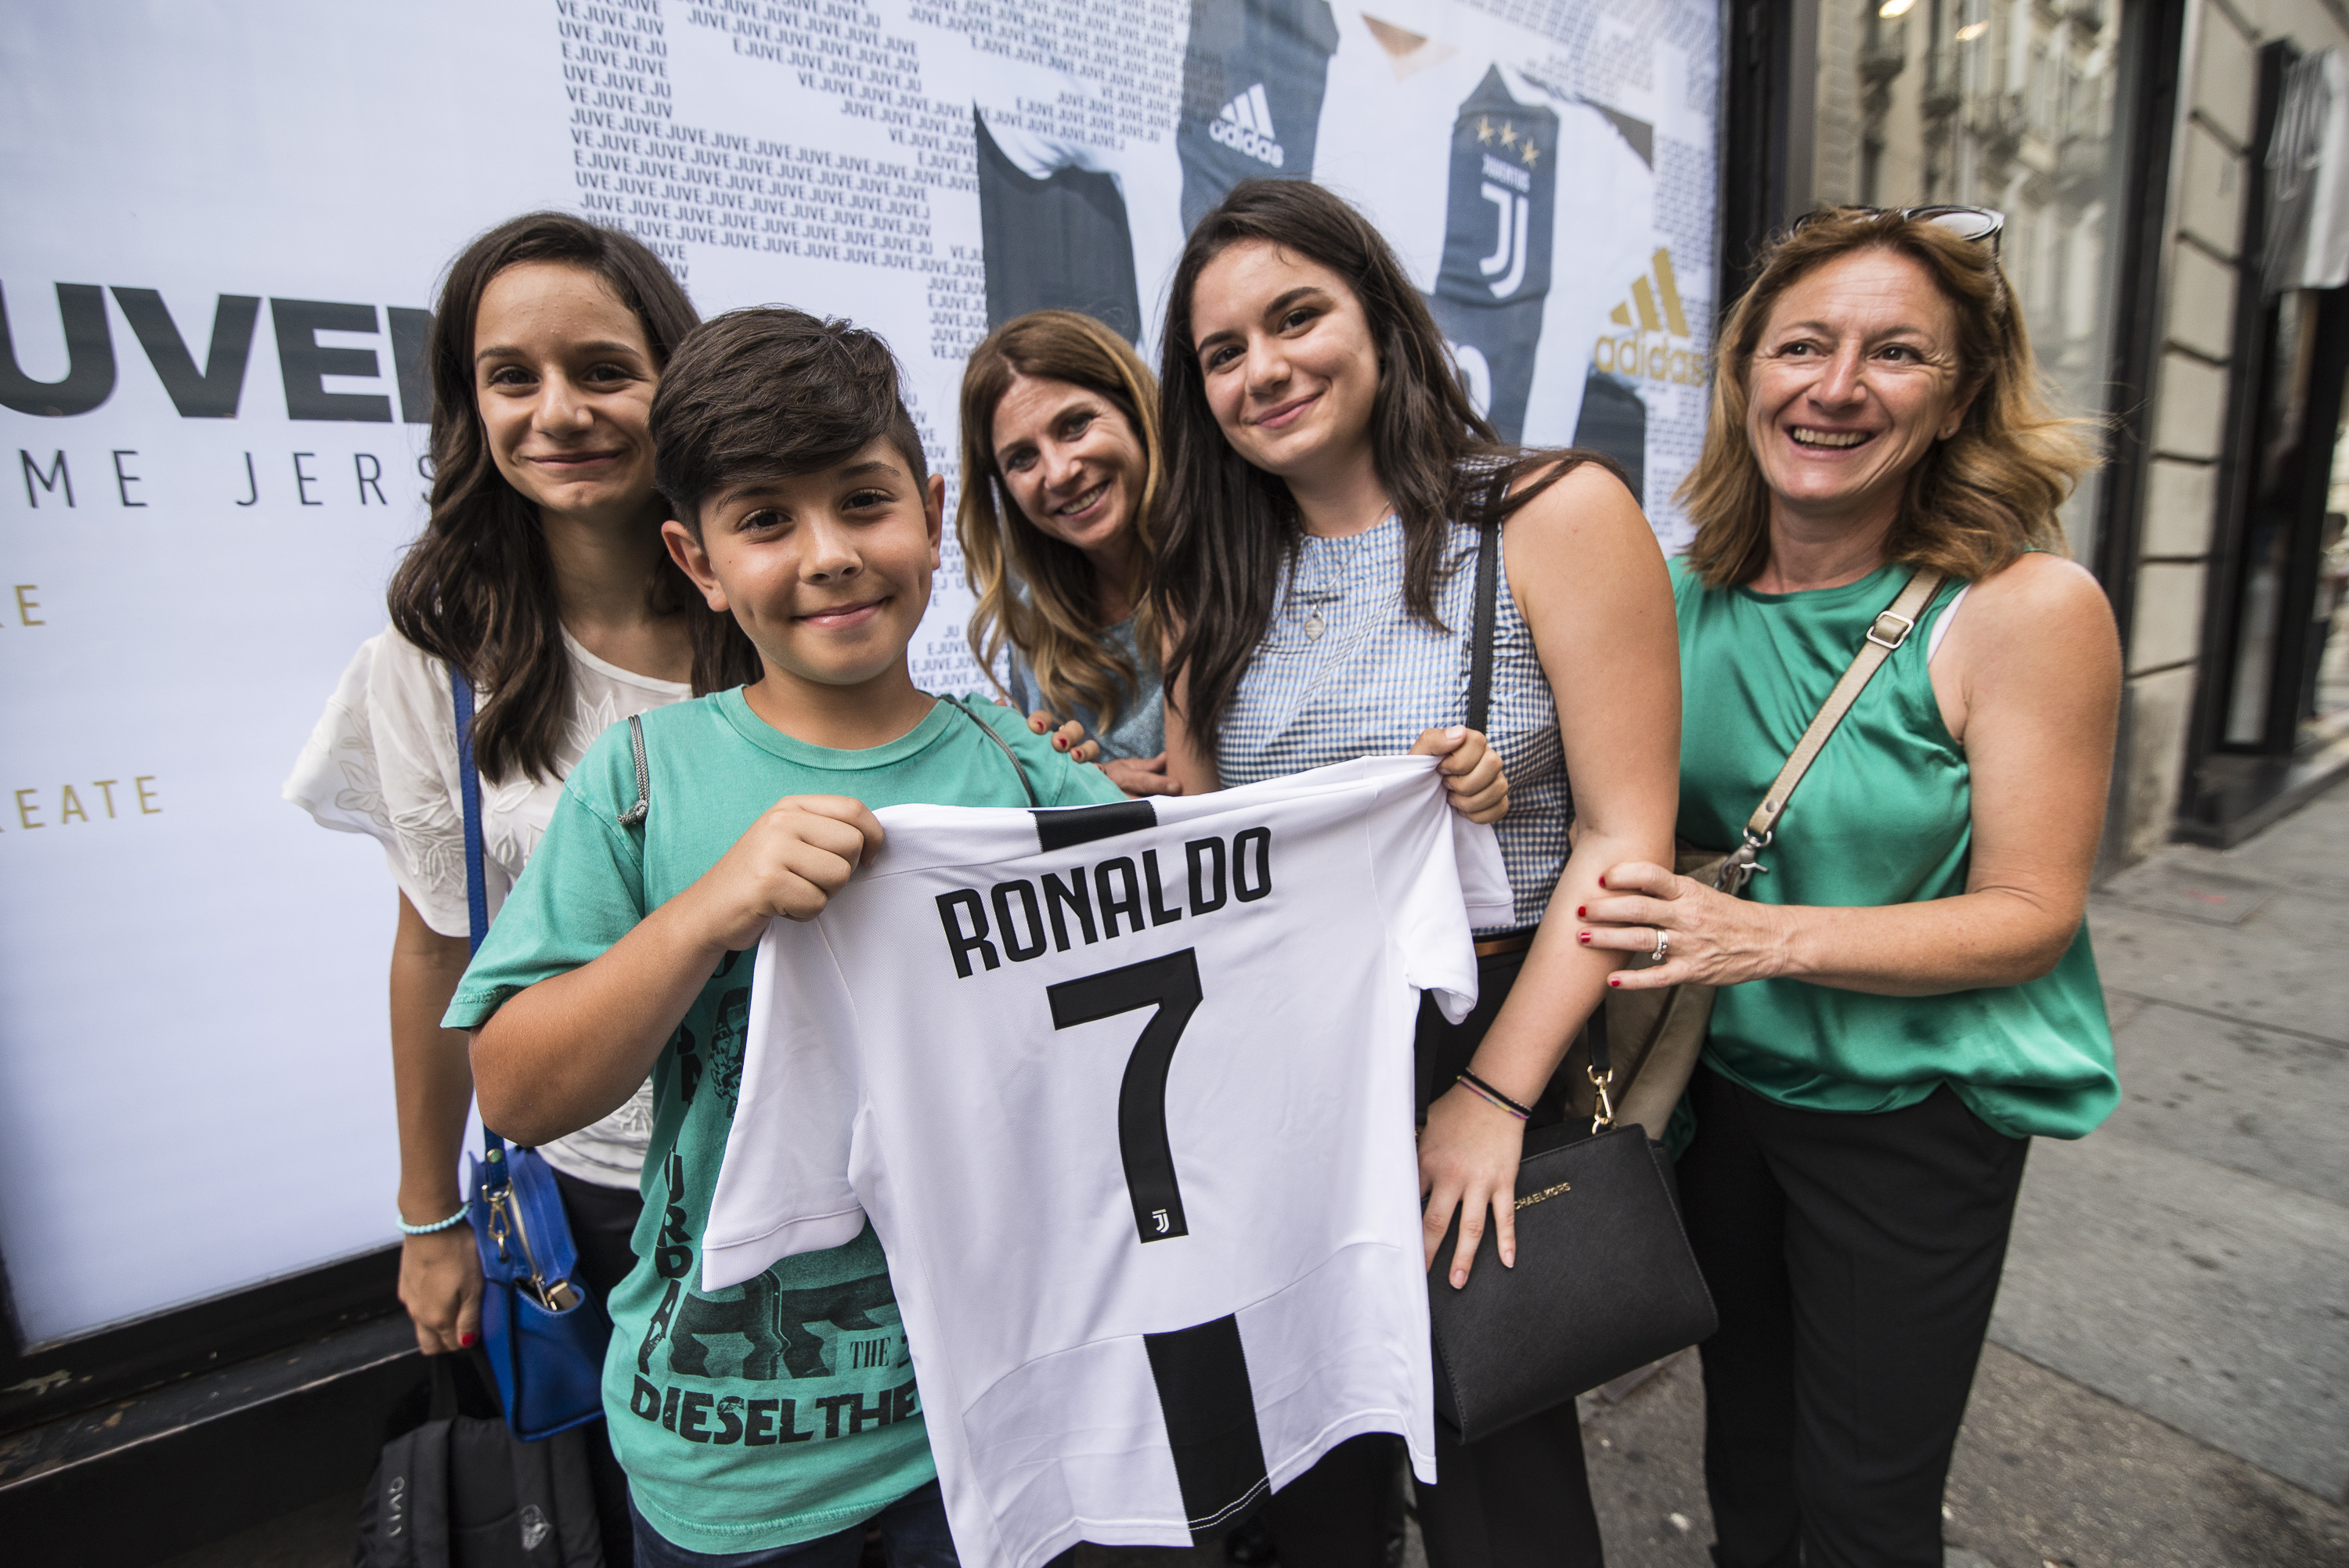 finest selection 7ef56 5ccf2 Juventus Sold A Ridiculous Amount Of Cristiano Ronaldo ...